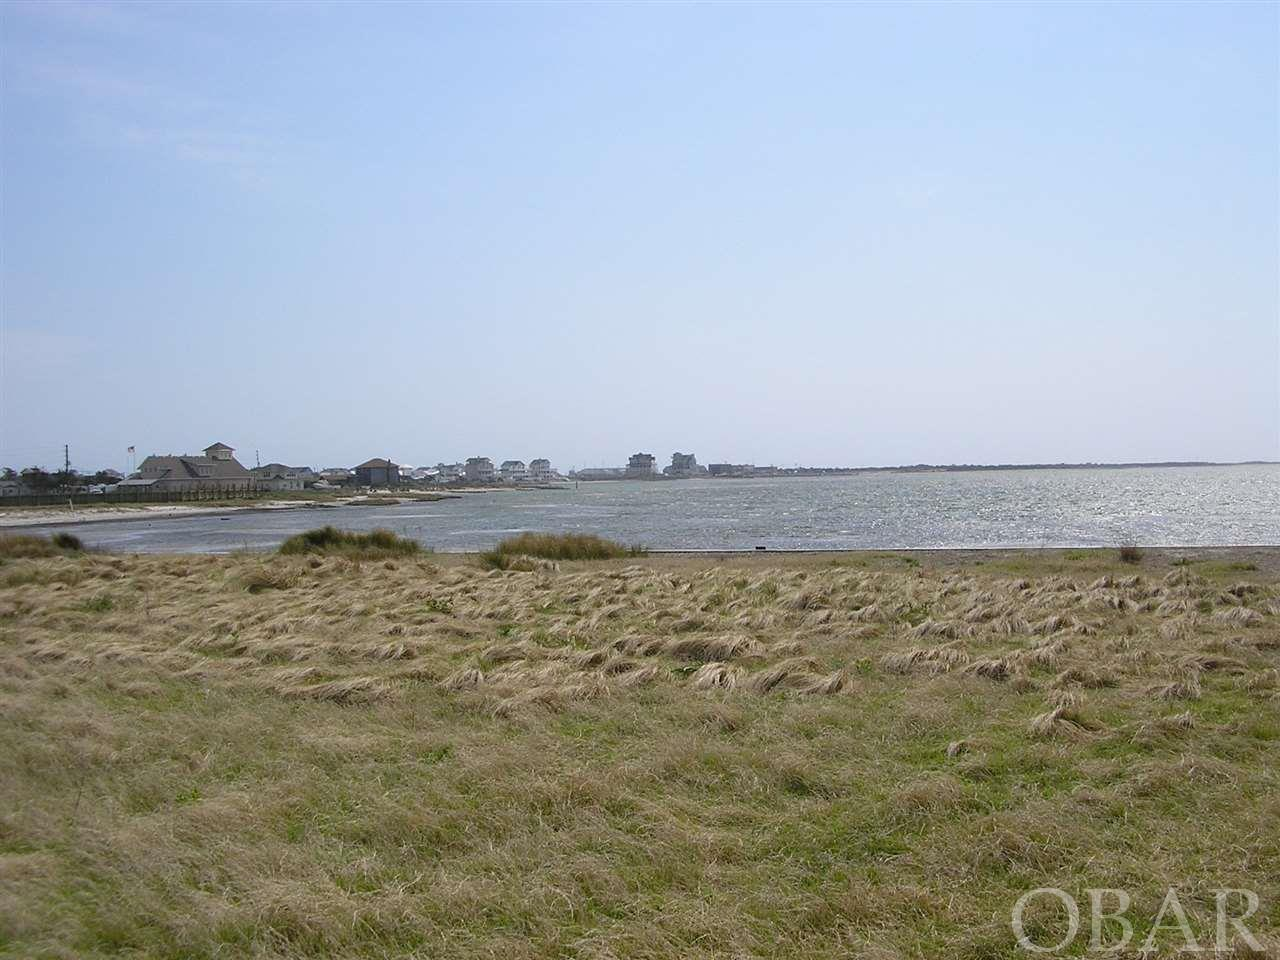 58166 Hatteras Harbor Court,Hatteras,NC 27943,Lots/land,Hatteras Harbor Court,87349